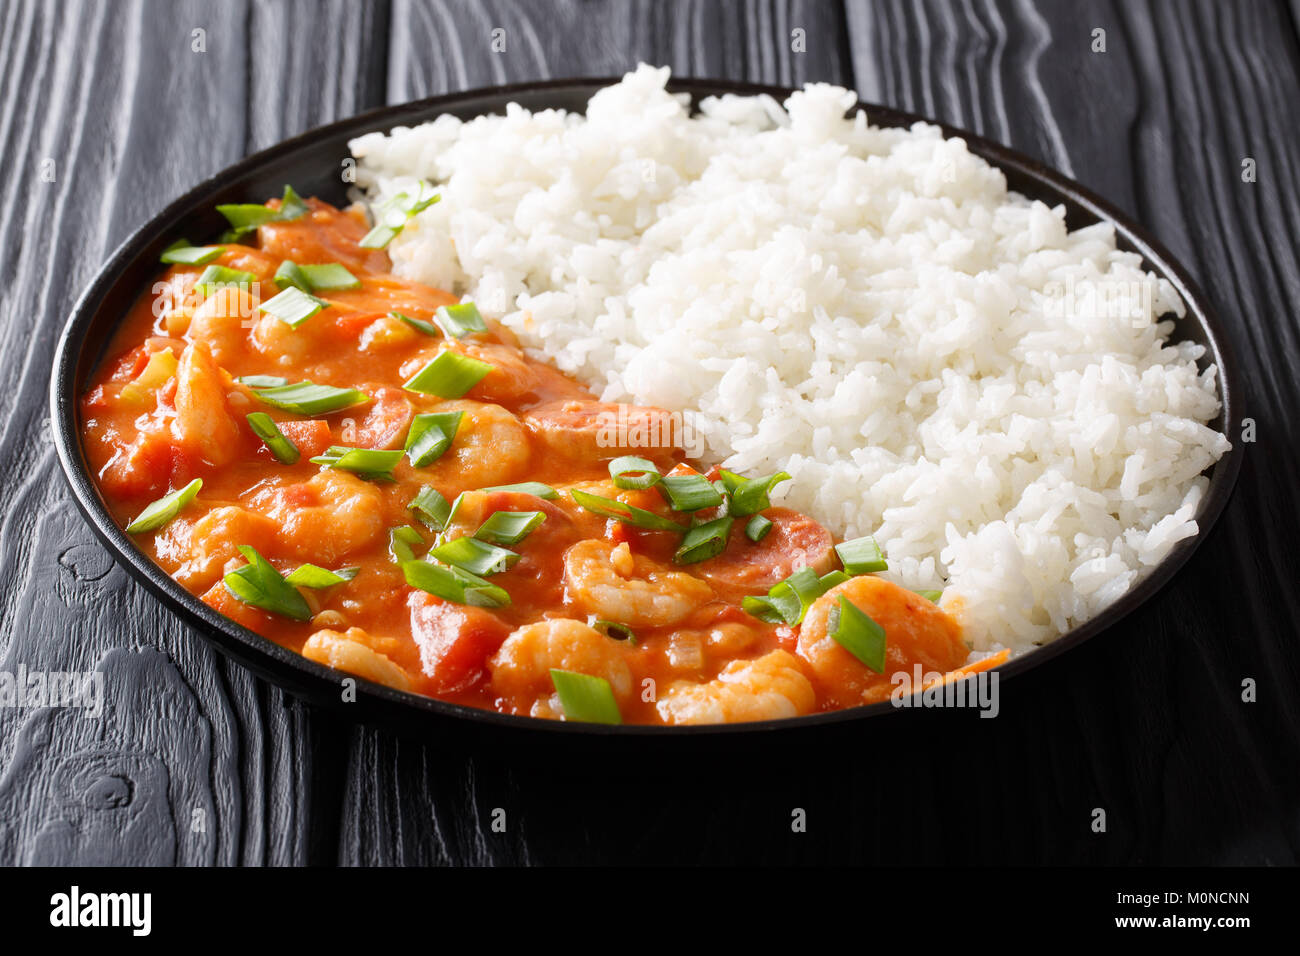 American cuisine: spicy gumbo with prawns, sausage and rice close-up on a plate on a table. horizontal - Stock Image